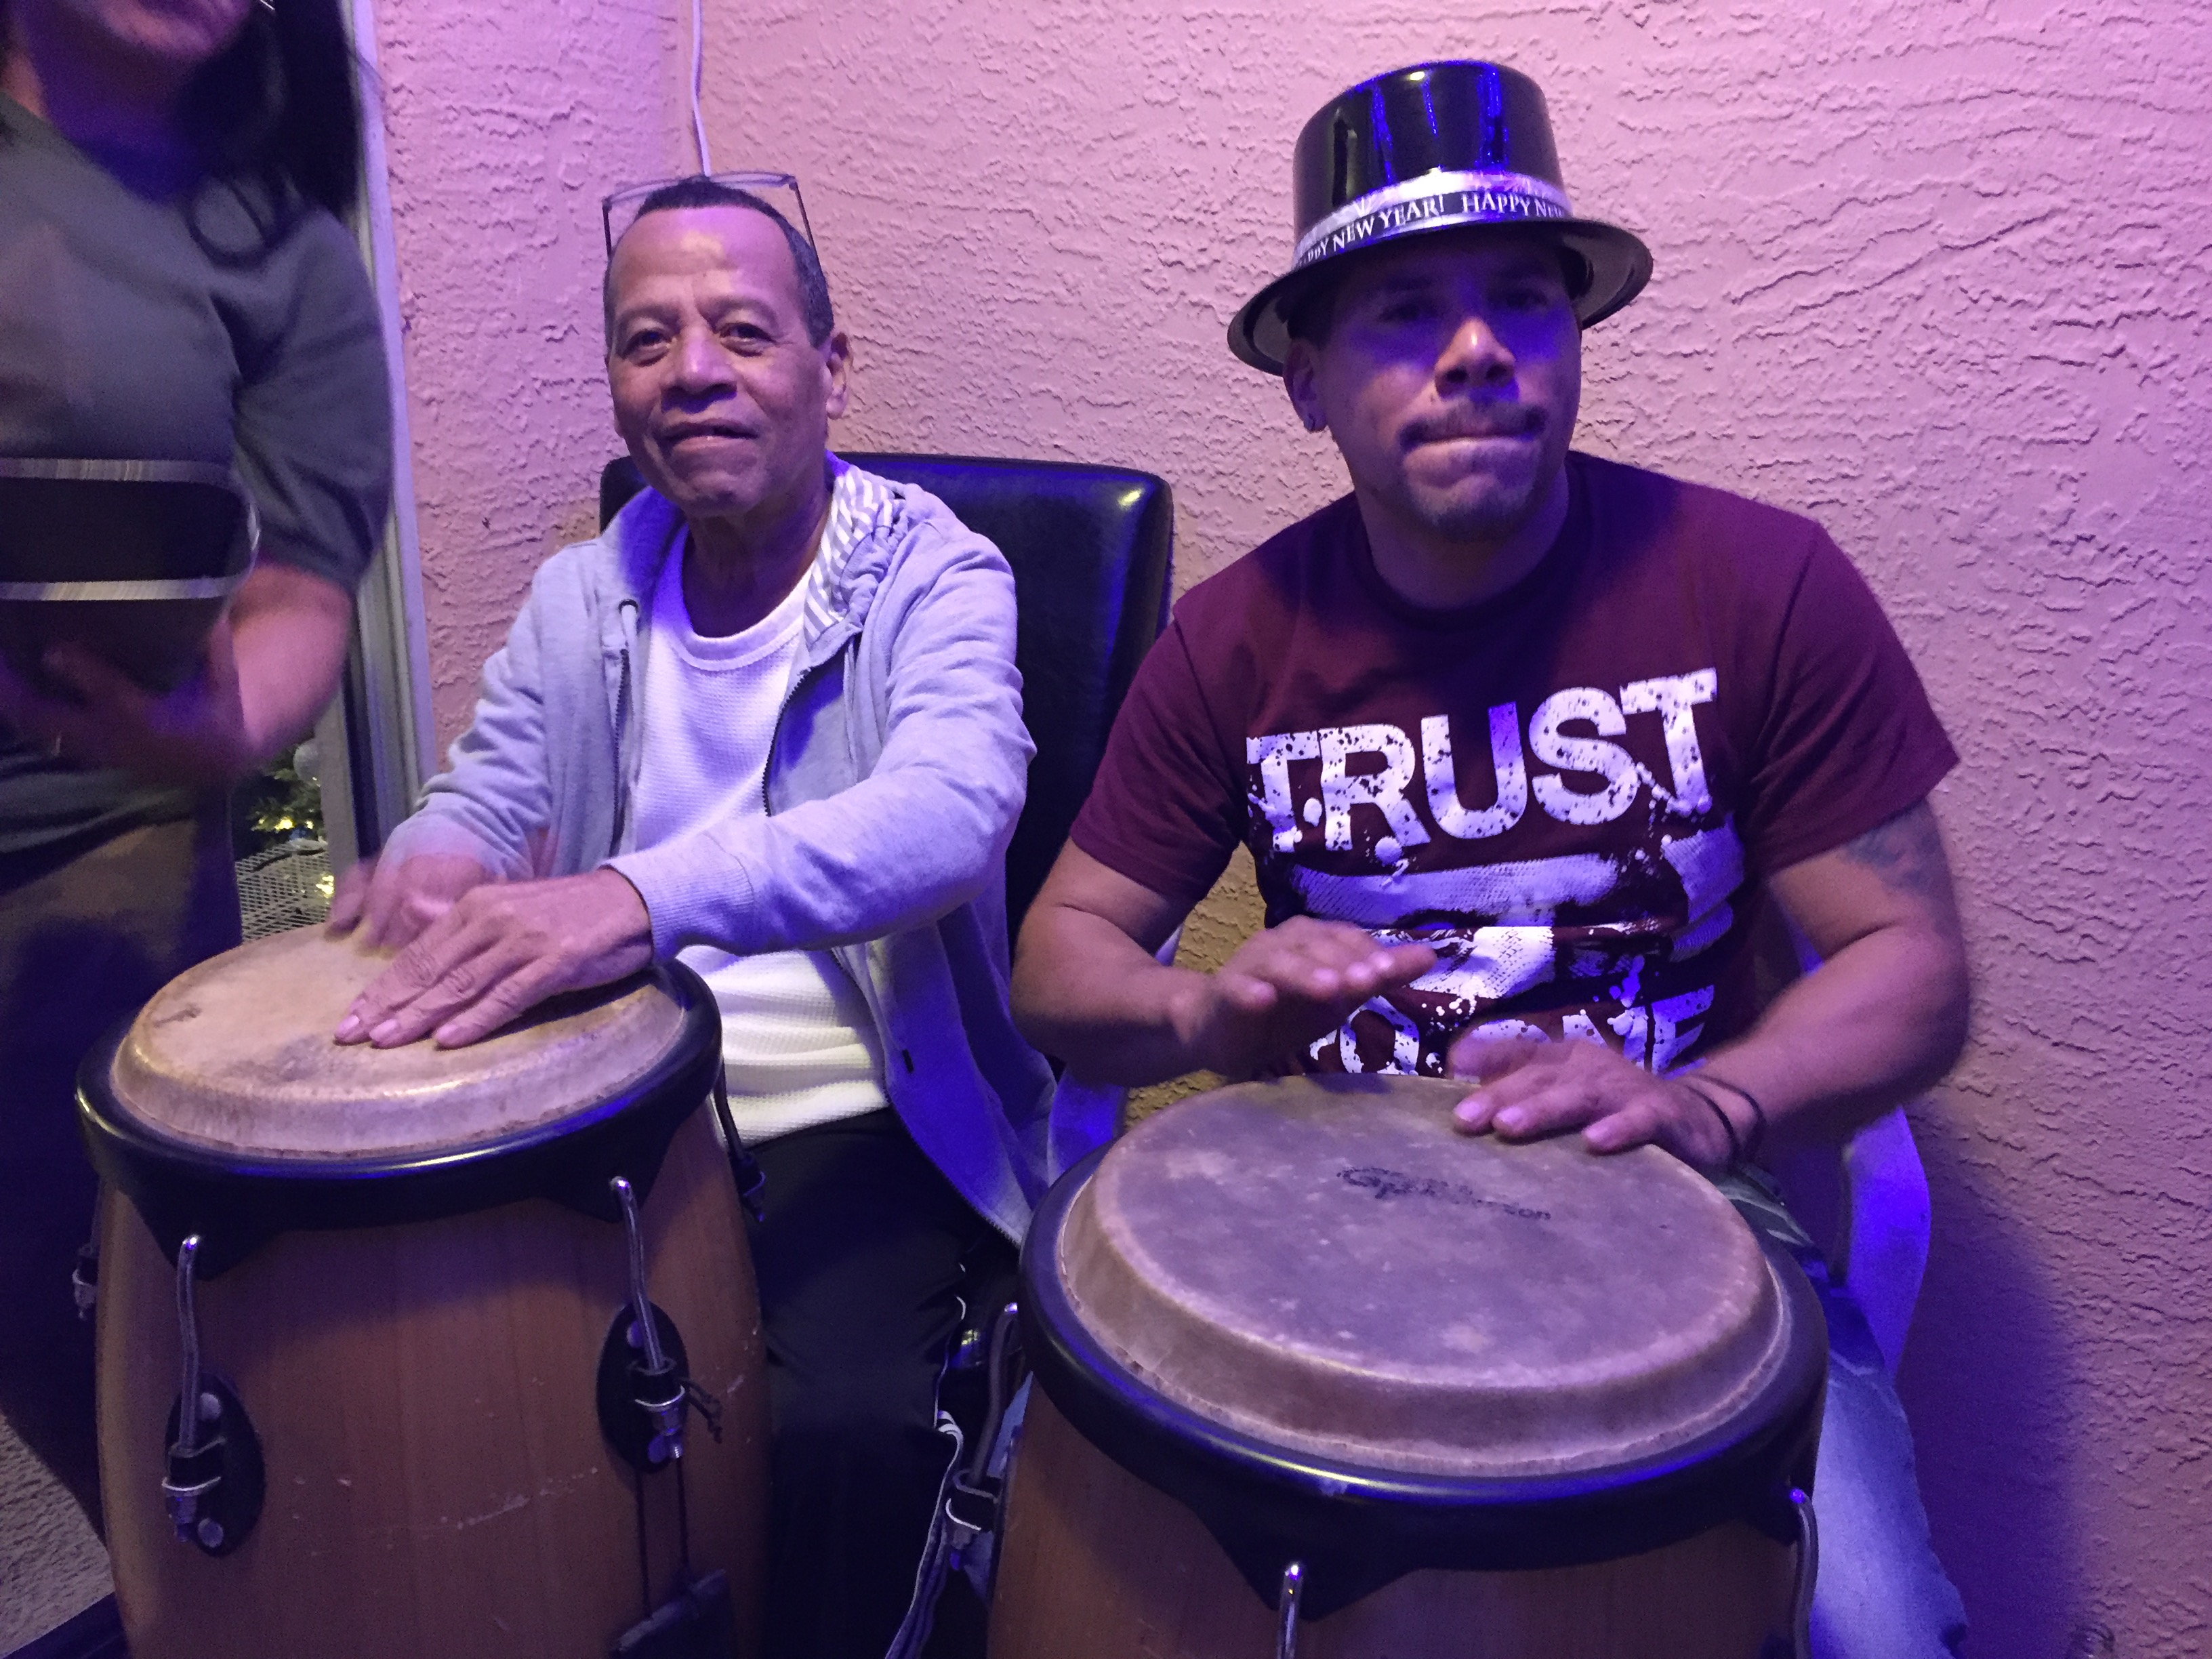 Playing the congas with my dad... love you papi with all my heart, I'll miss you